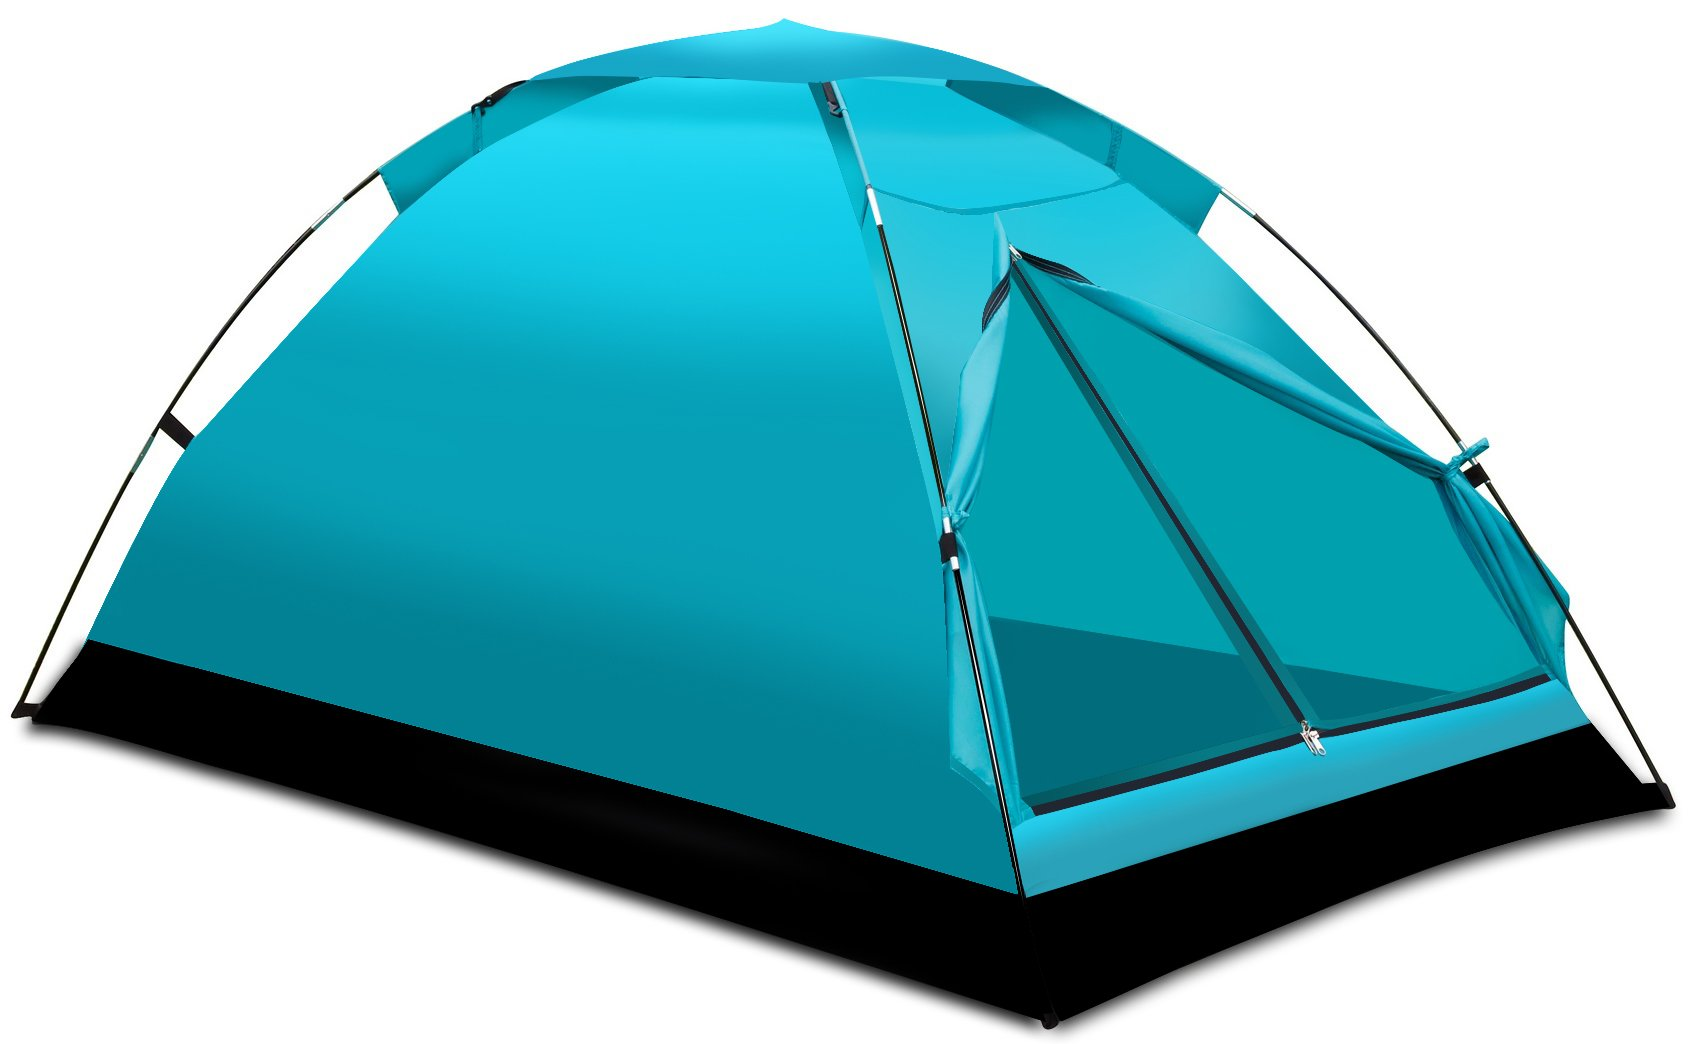 Alvantor Camping Tents Outdoor Travelite Backpacking Light-Weight Family Dome Tent 2 Person 2 Season Hiking Fishing Instant Portable Shelter Gift Easy Set-Up by Alvantor